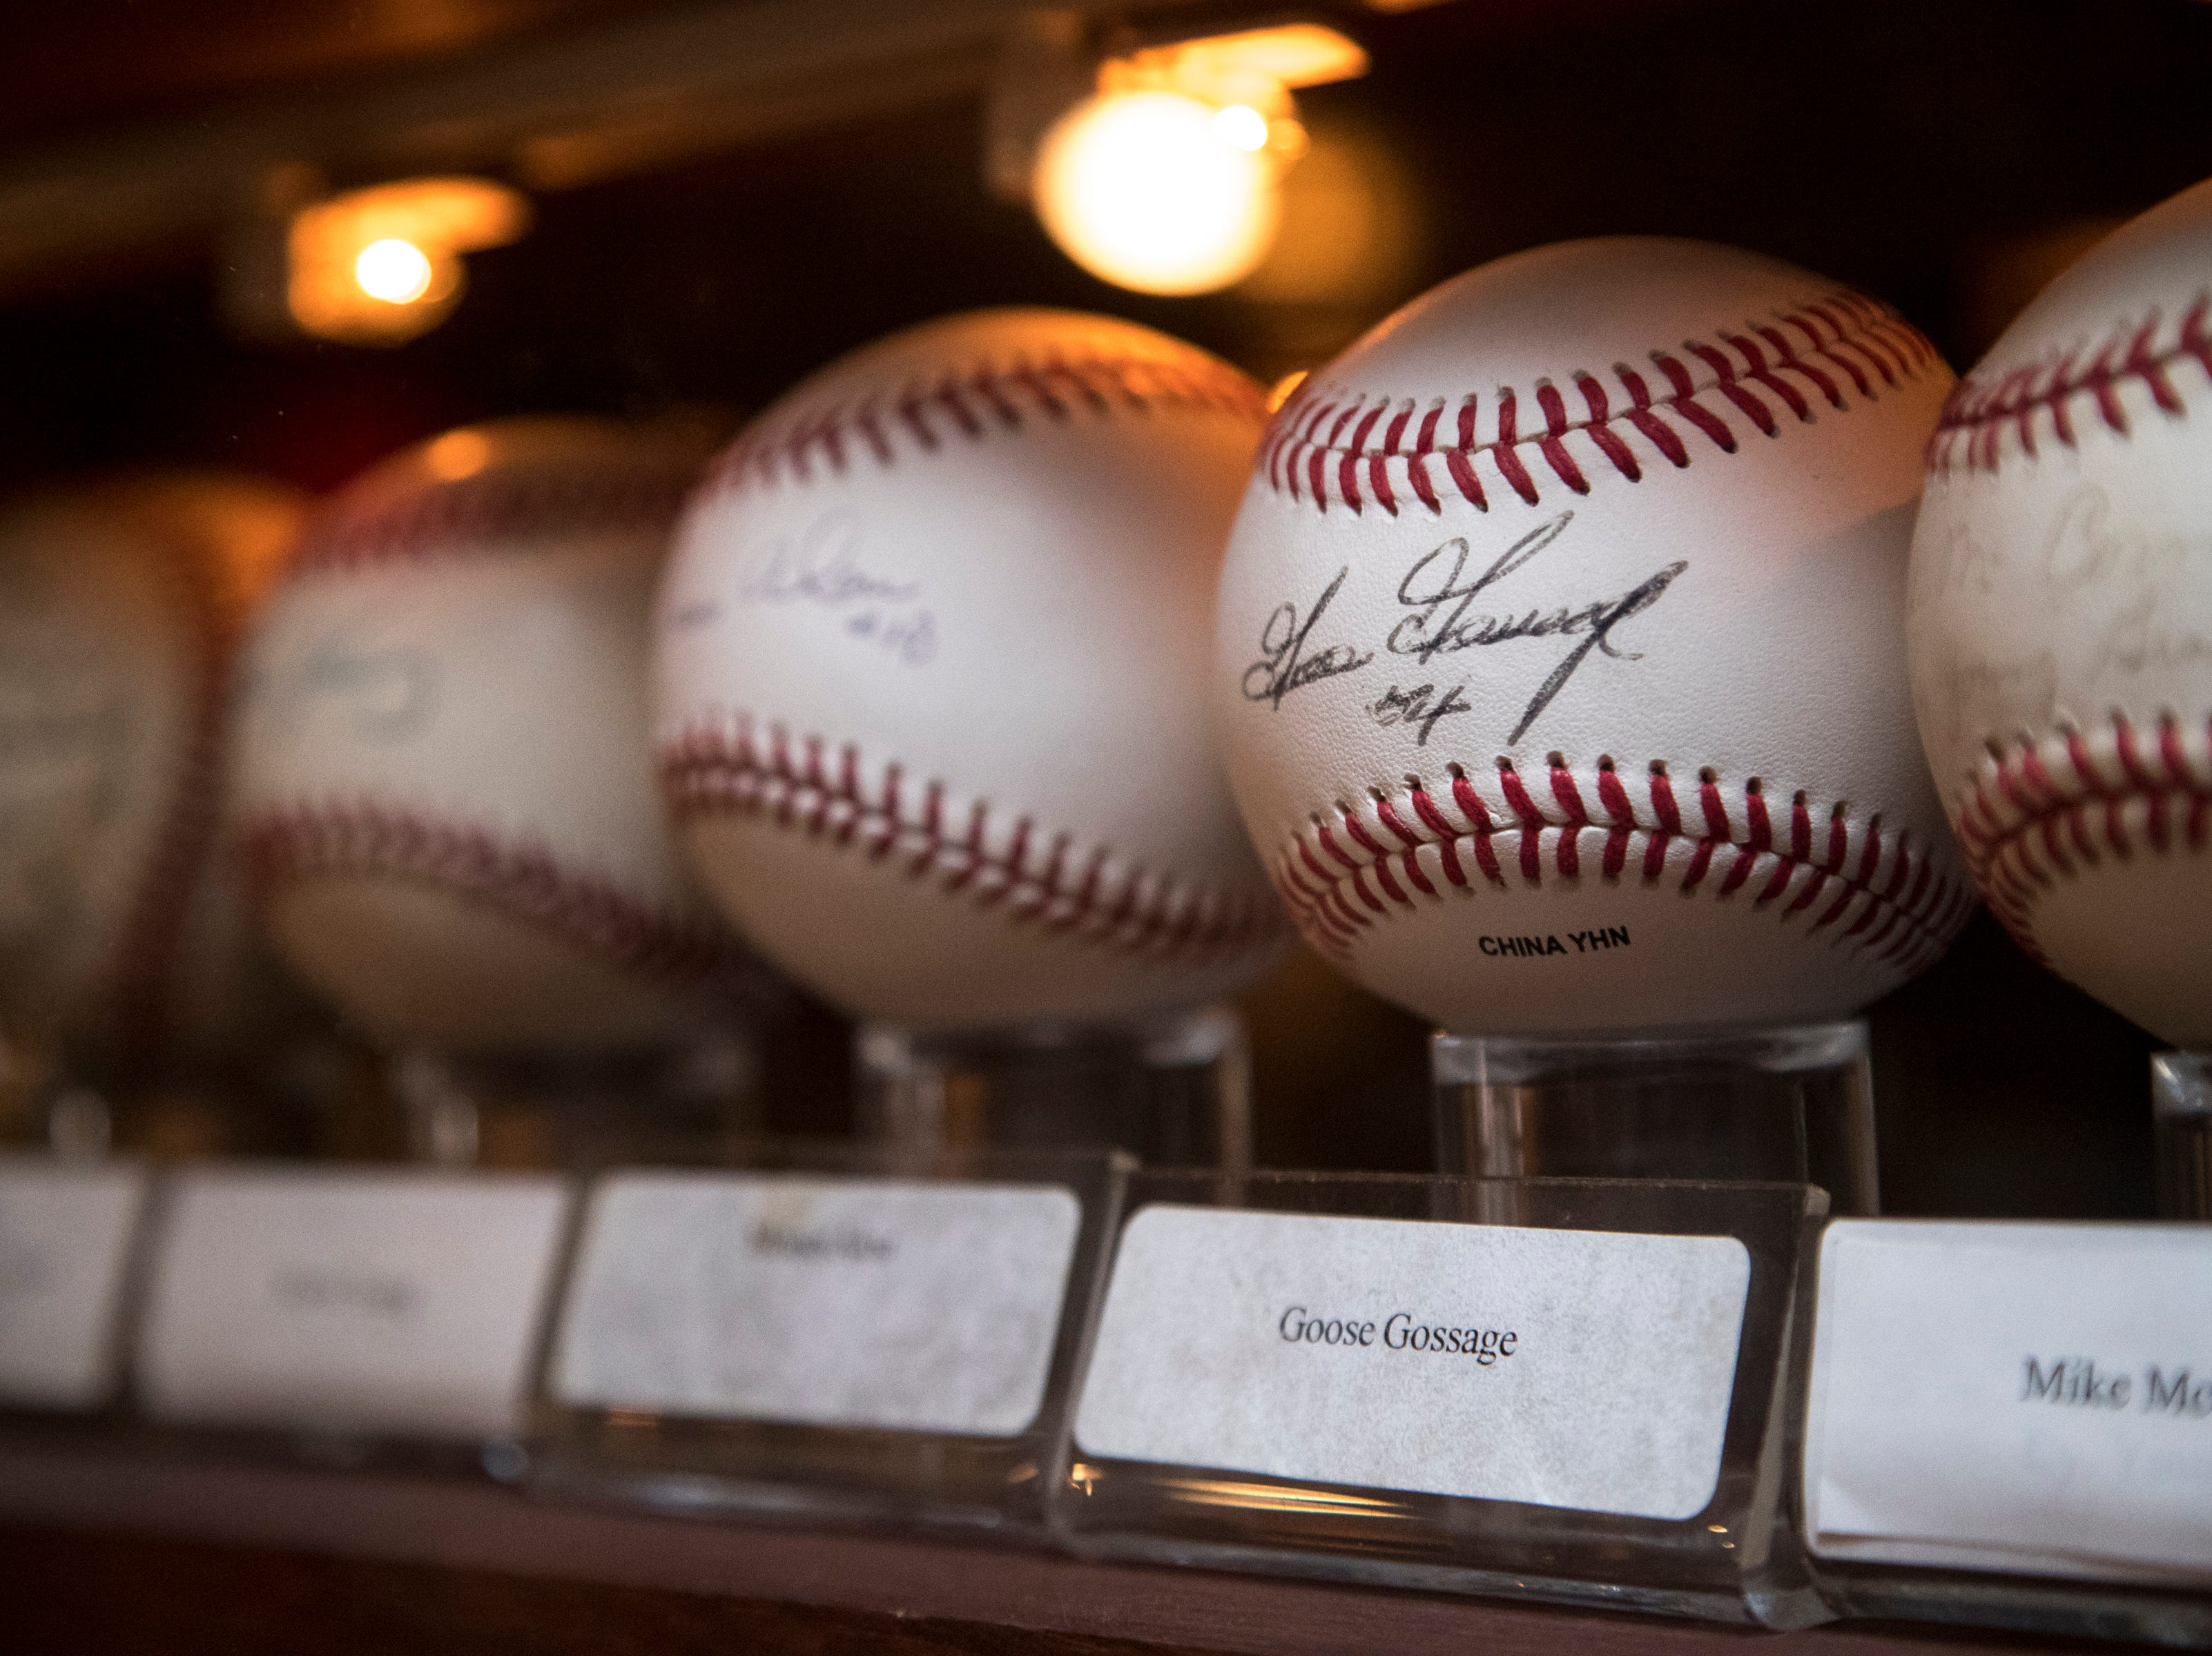 A baseball signed by Goose Gossage is seen Feb. 27, 2019, at Don & Charlie's, 7501 E. Camelback Road, Scottsdale.